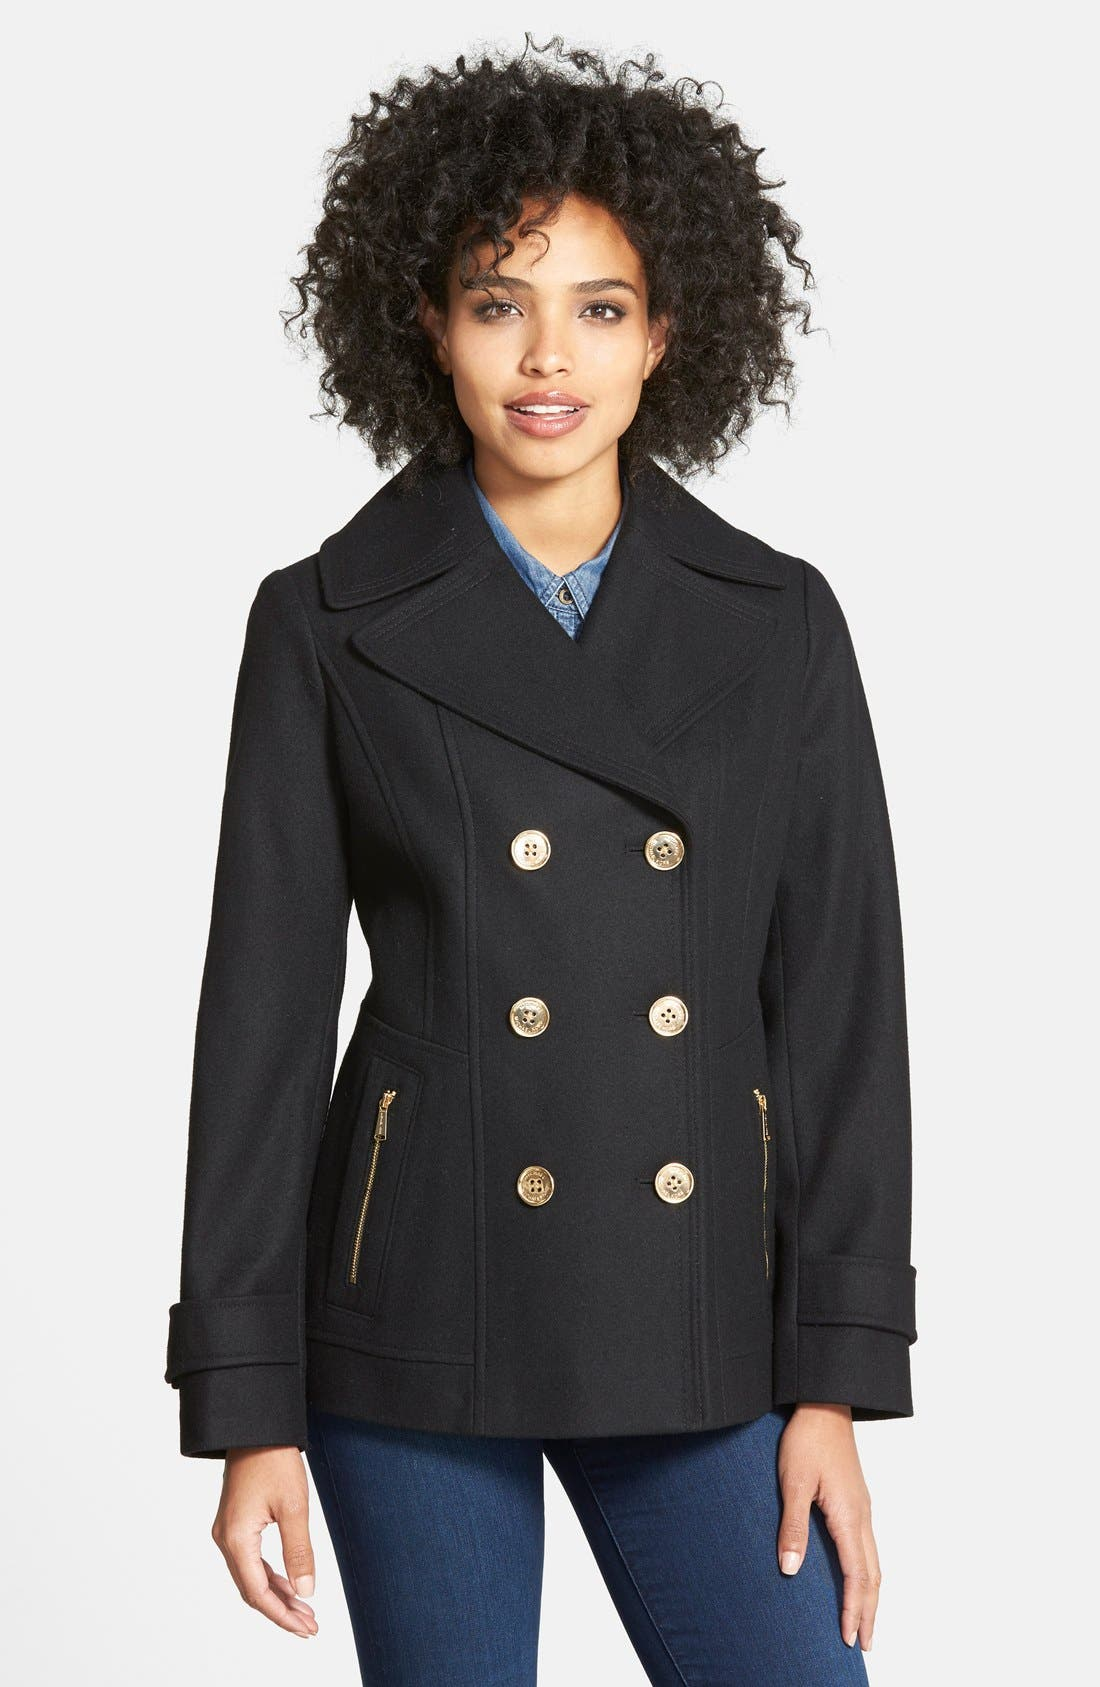 MICHAEL MICHAEL KORS,                             Wool Blend Peacoat,                             Main thumbnail 1, color,                             001